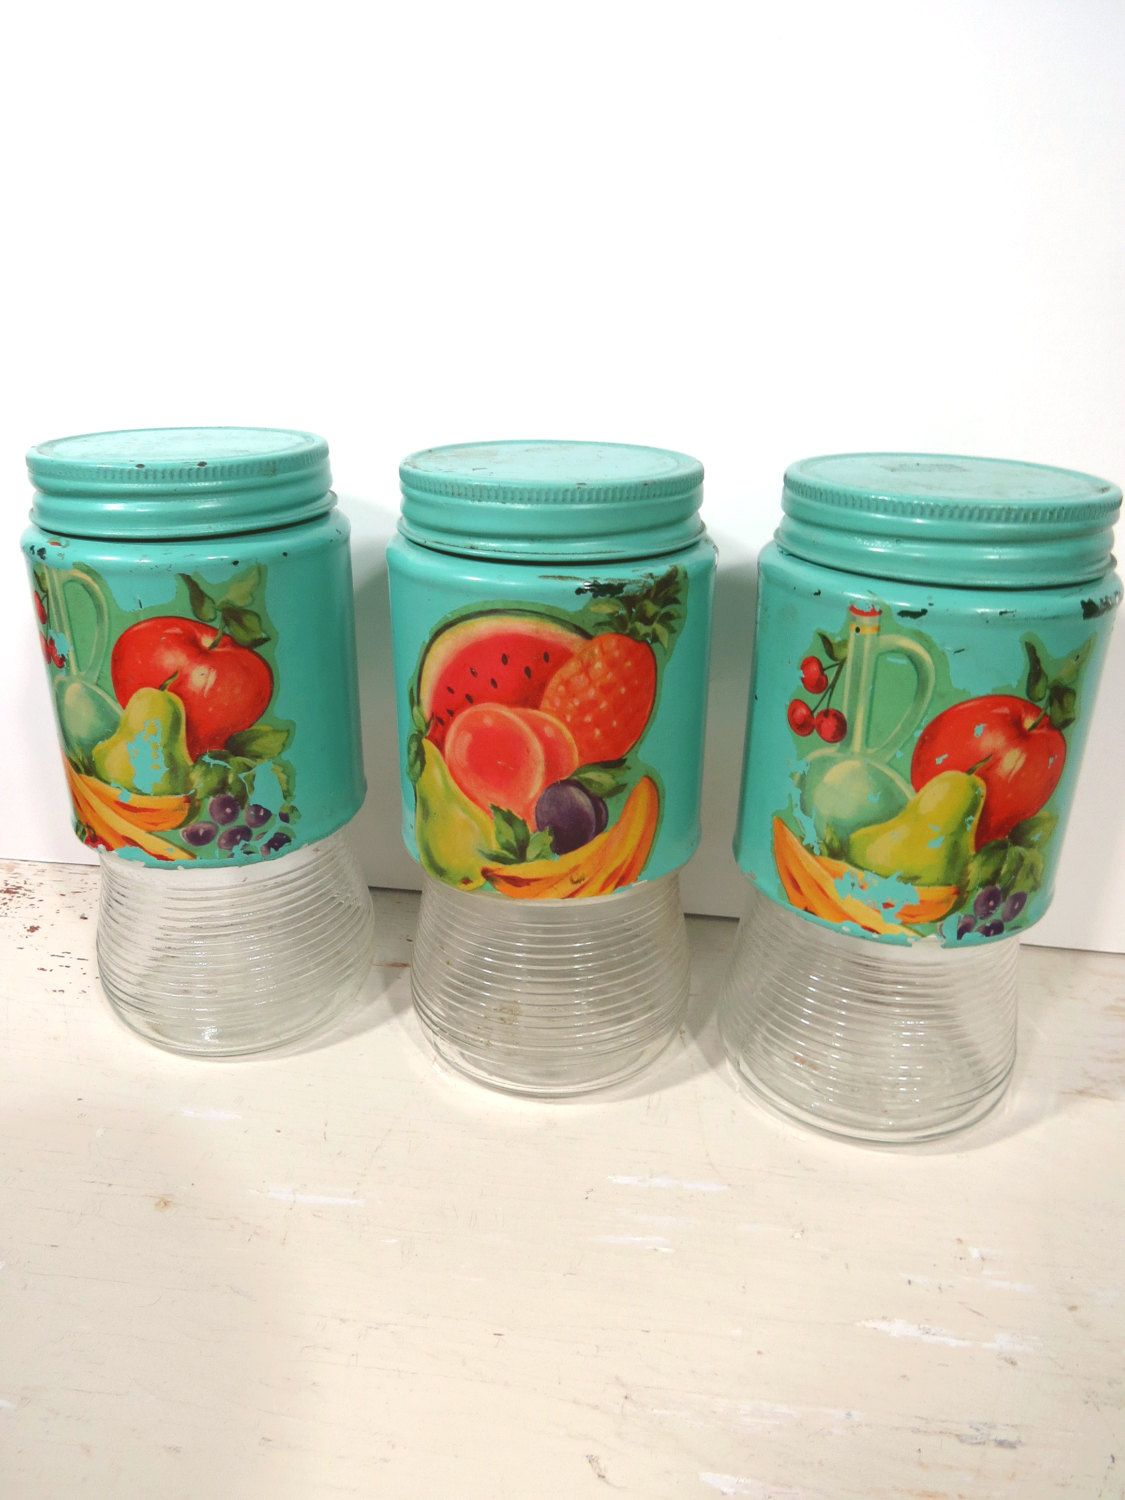 vintage glass turquoise kitchen storage jars fruit vegetable vintage glass turquoise kitchen storage jars fruit vegetable decals set of 3 spices tea coffee nuts candy vintage decor